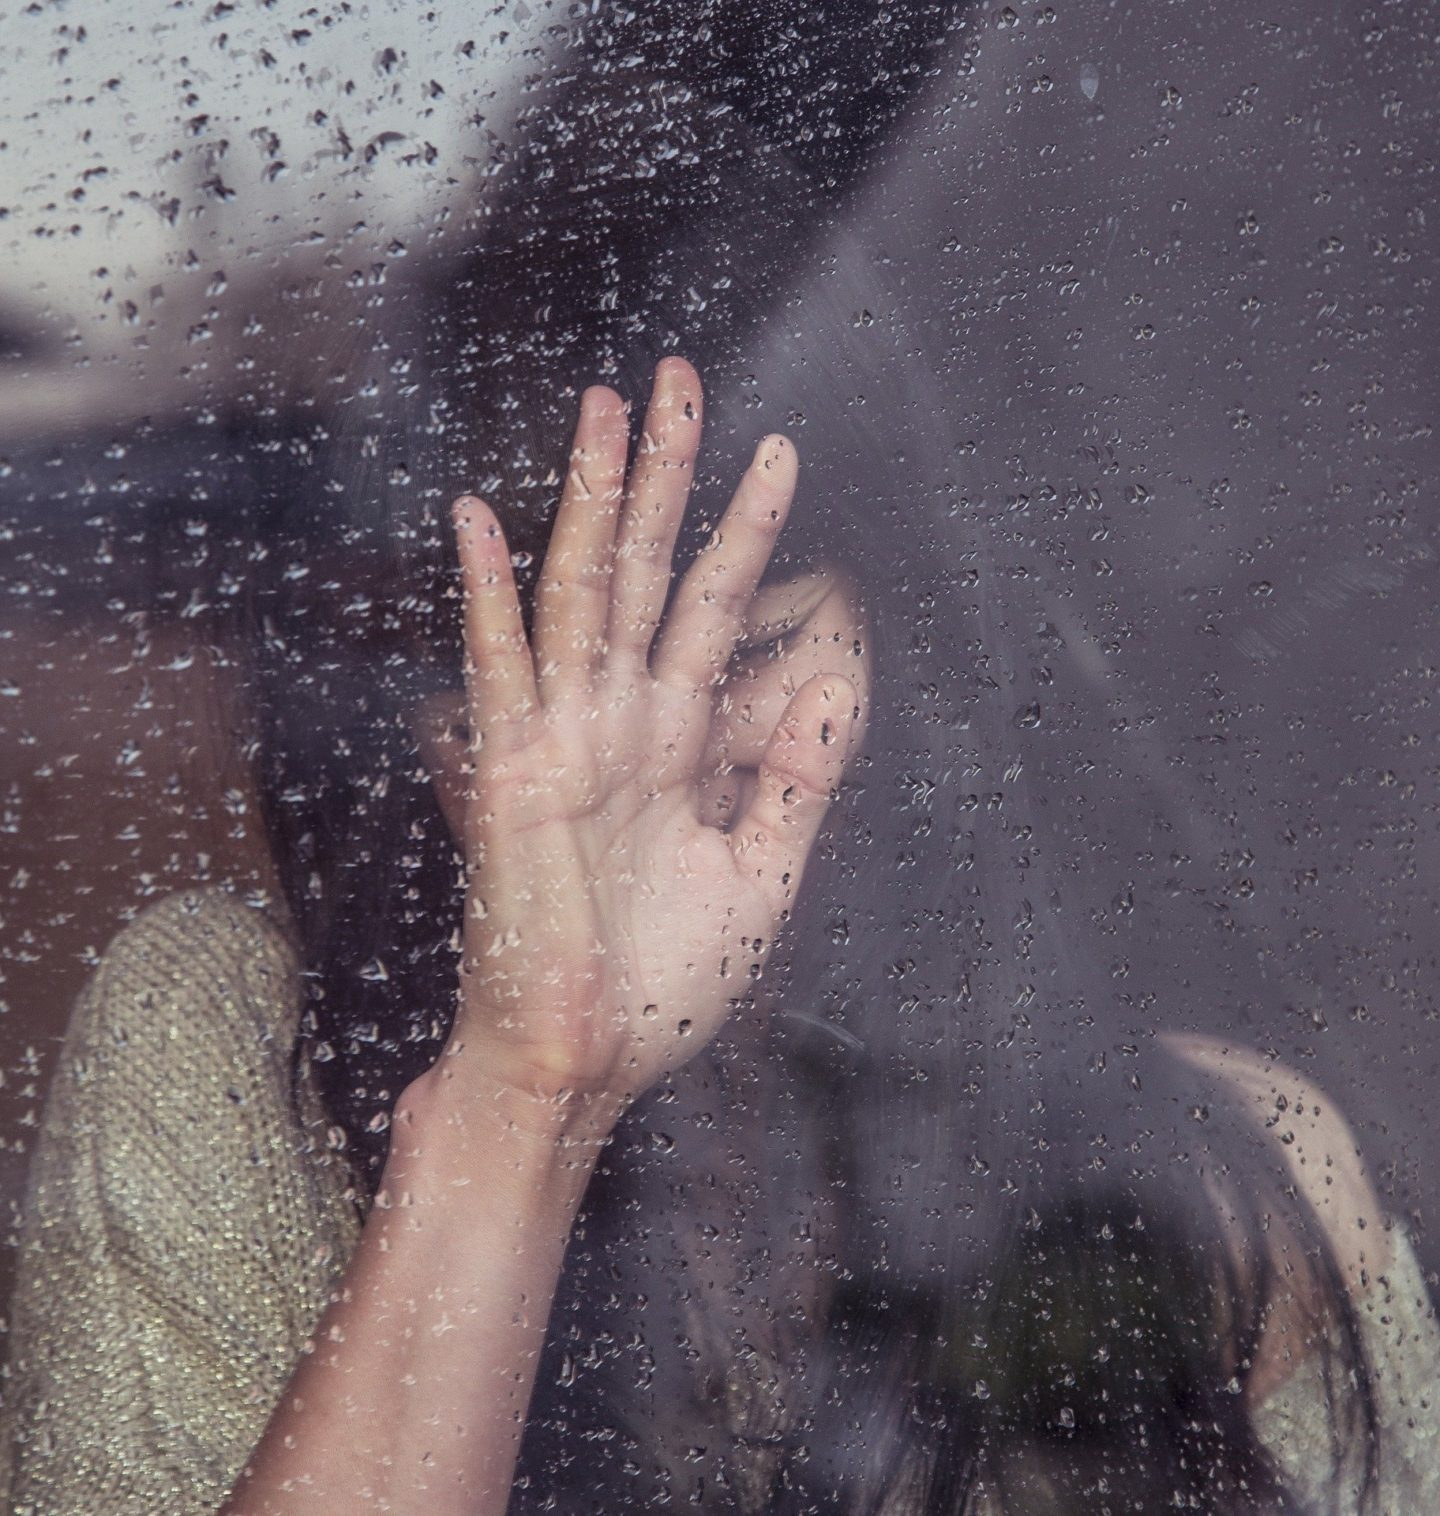 girl crying while touching glass window